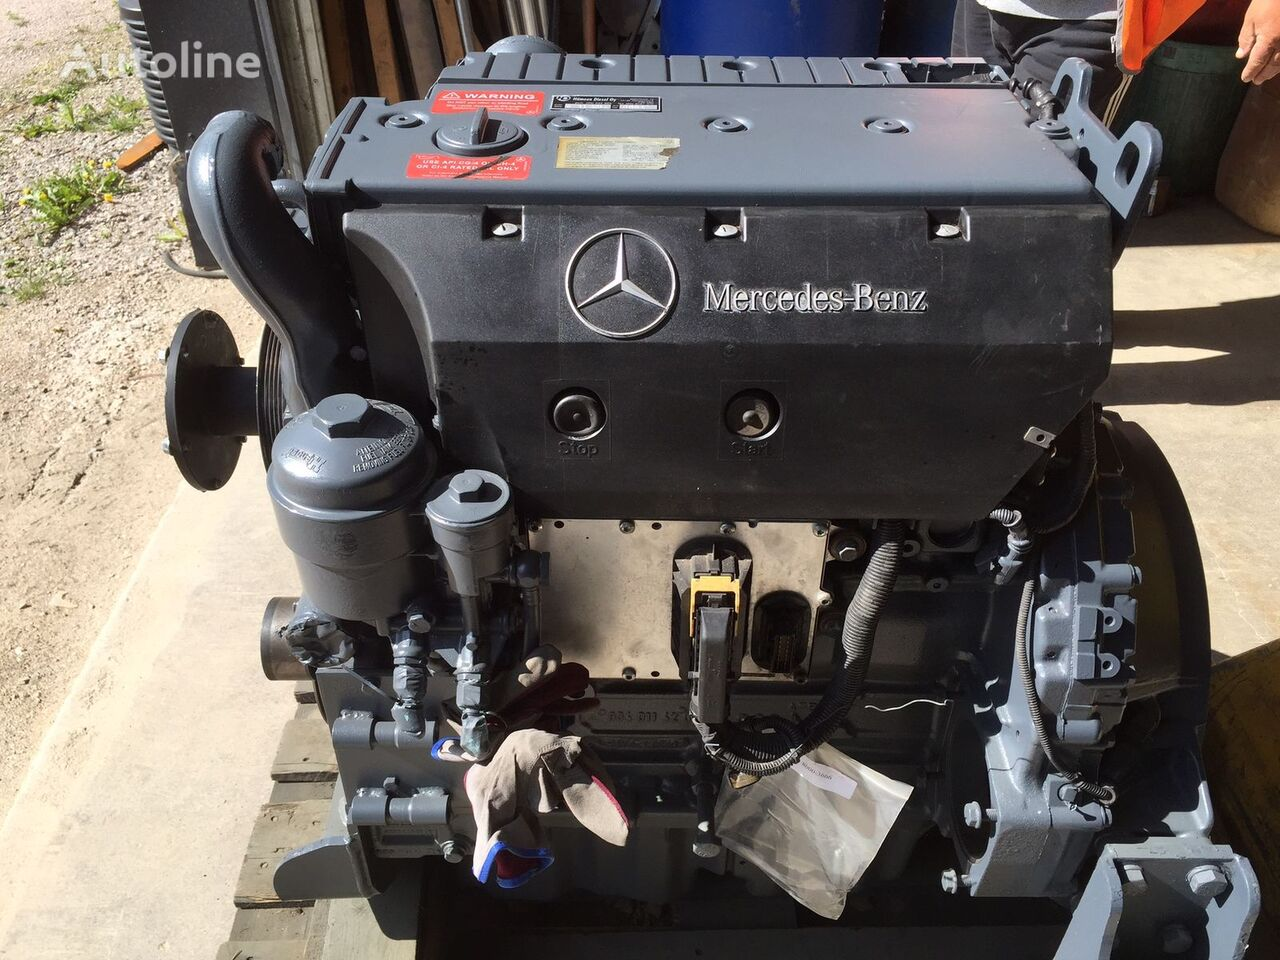 Mercedes Benz OM904 LA refurbished motor para camión